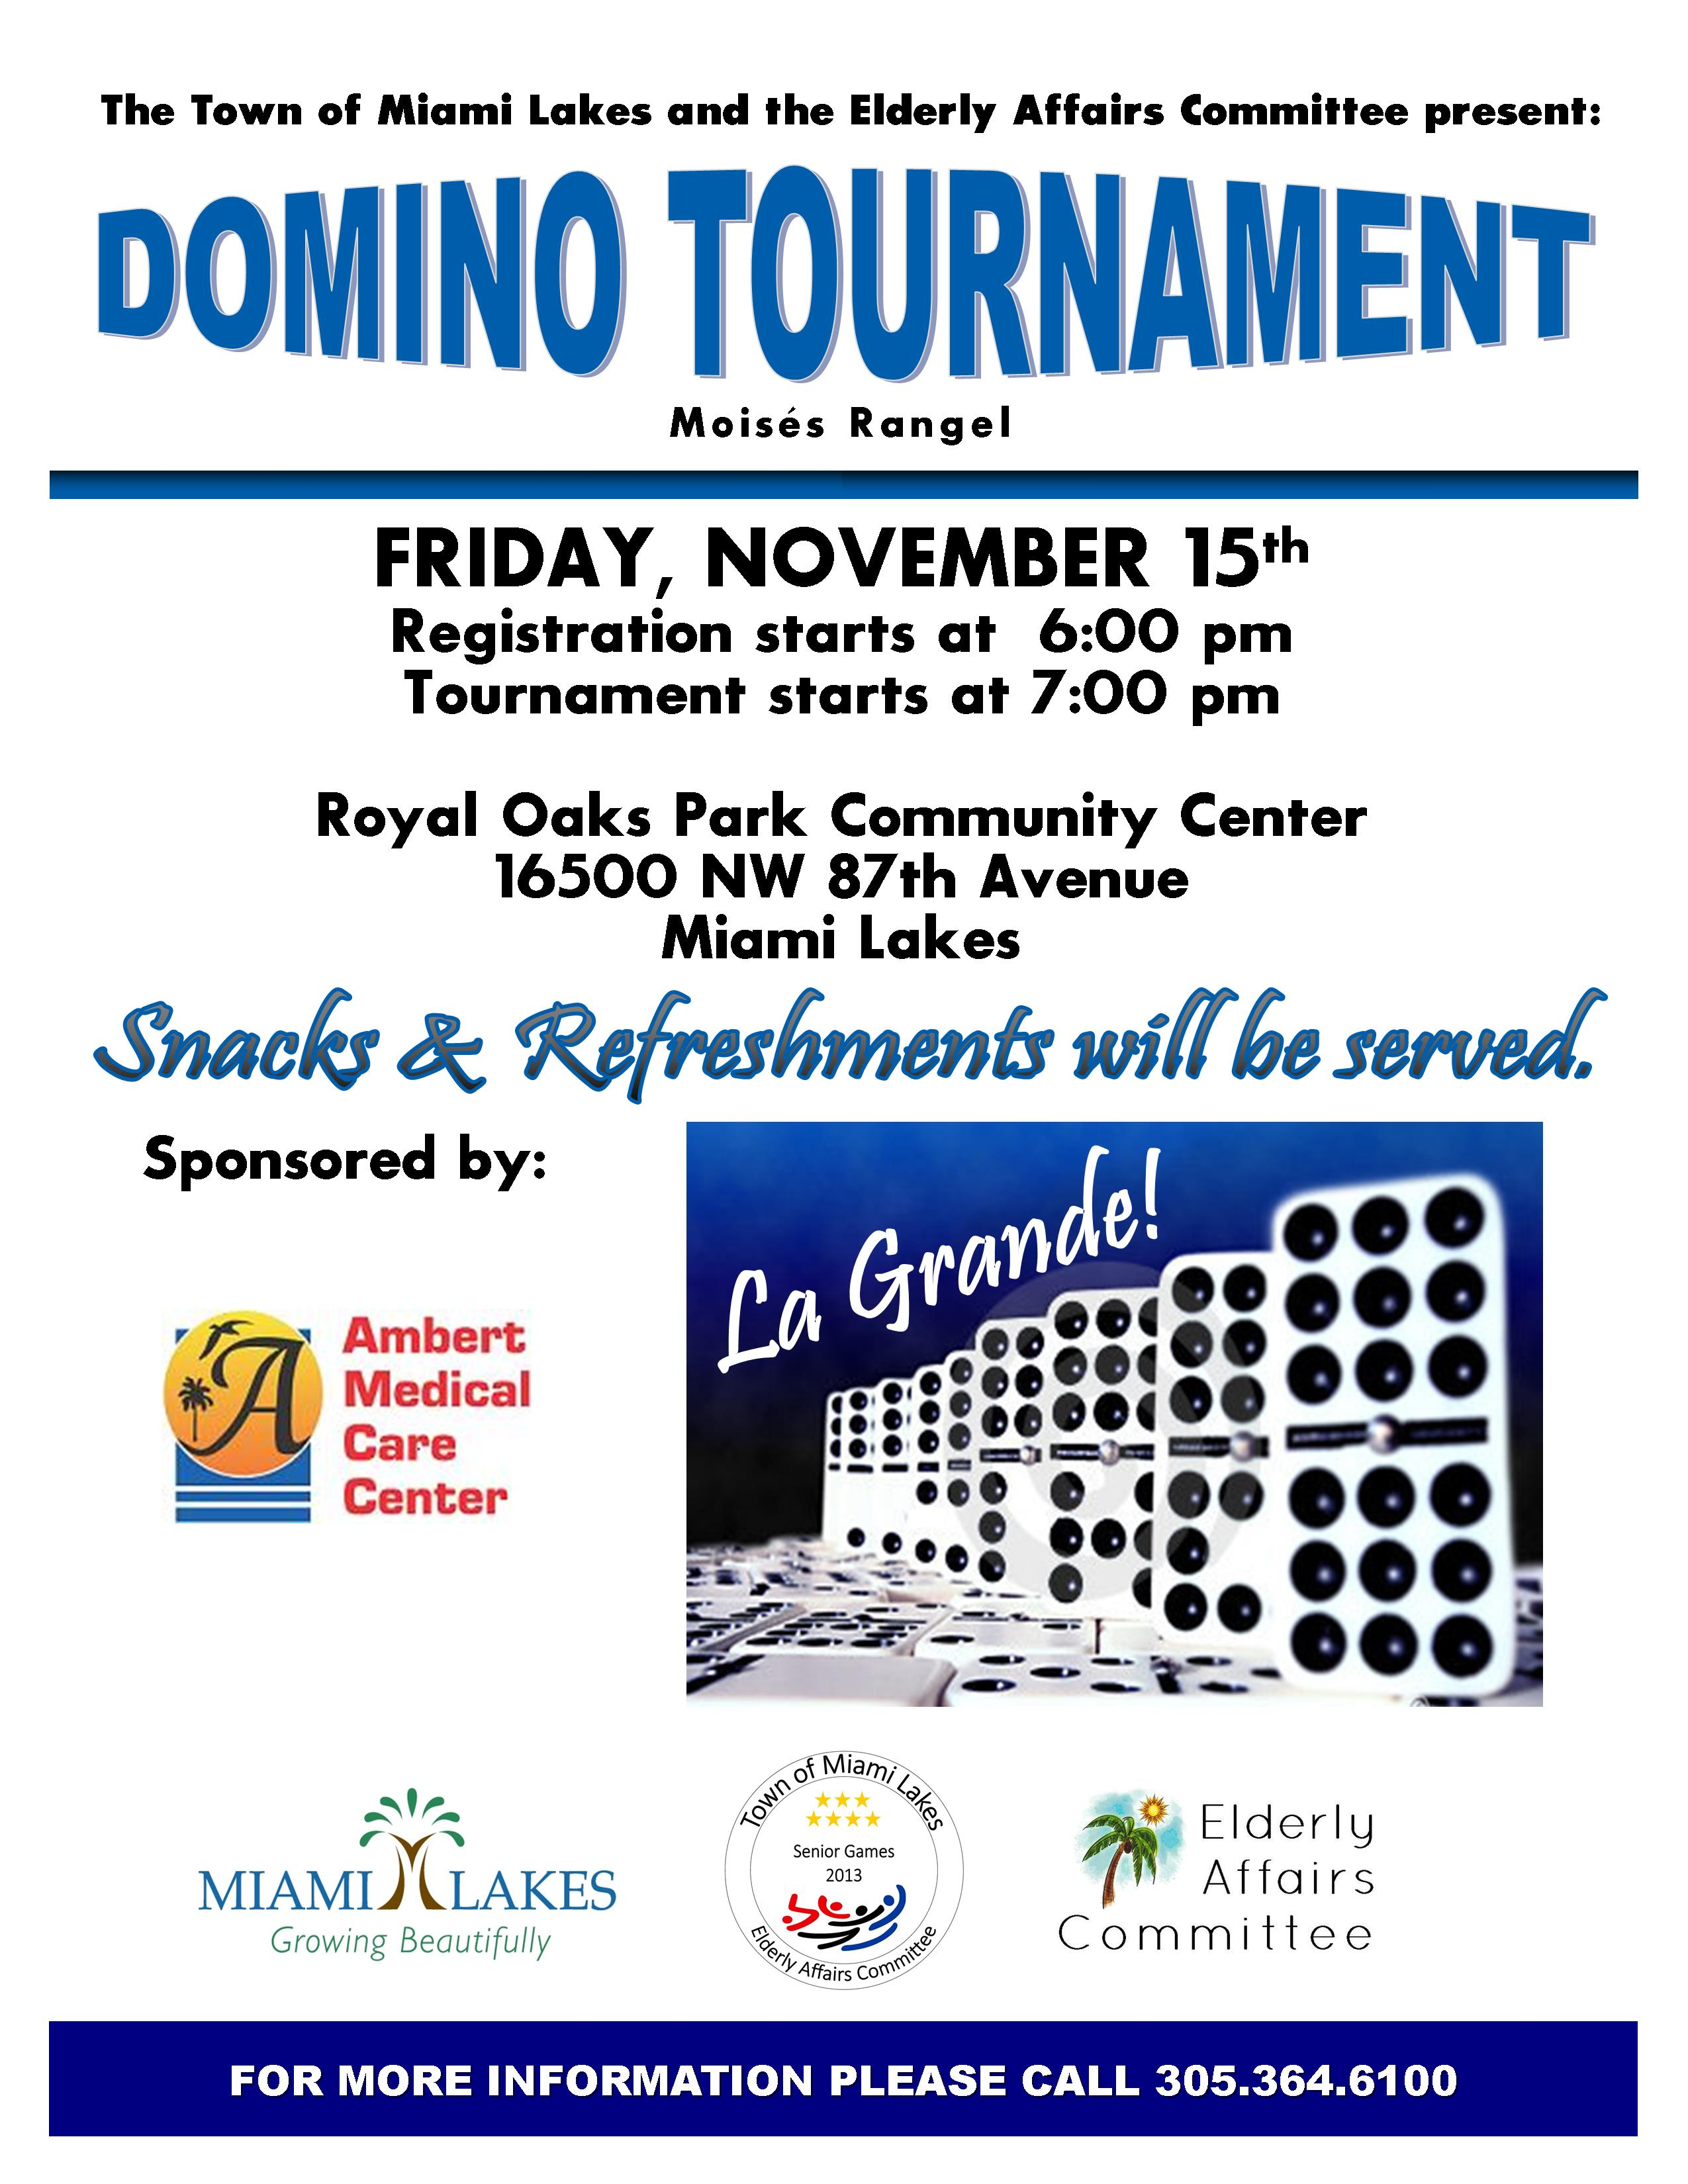 EAC Domino Tournament 2013